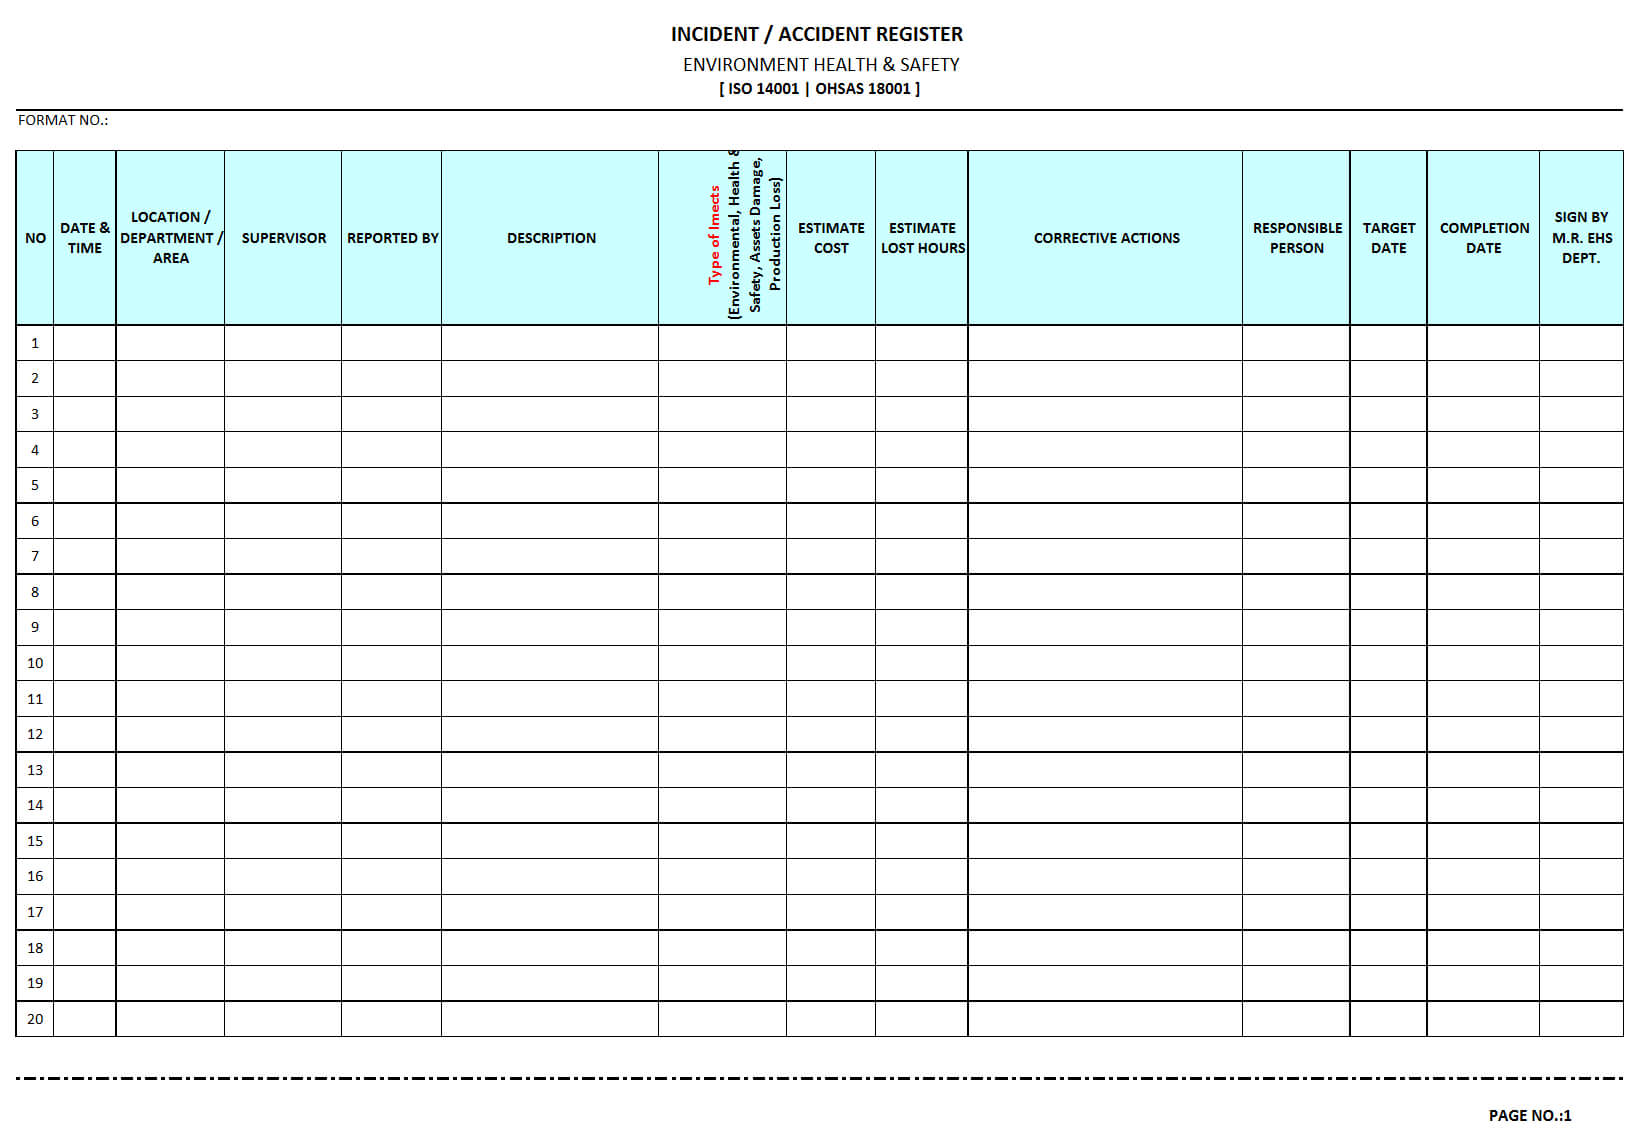 Incident / Accident Register - In Incident Report Register Template